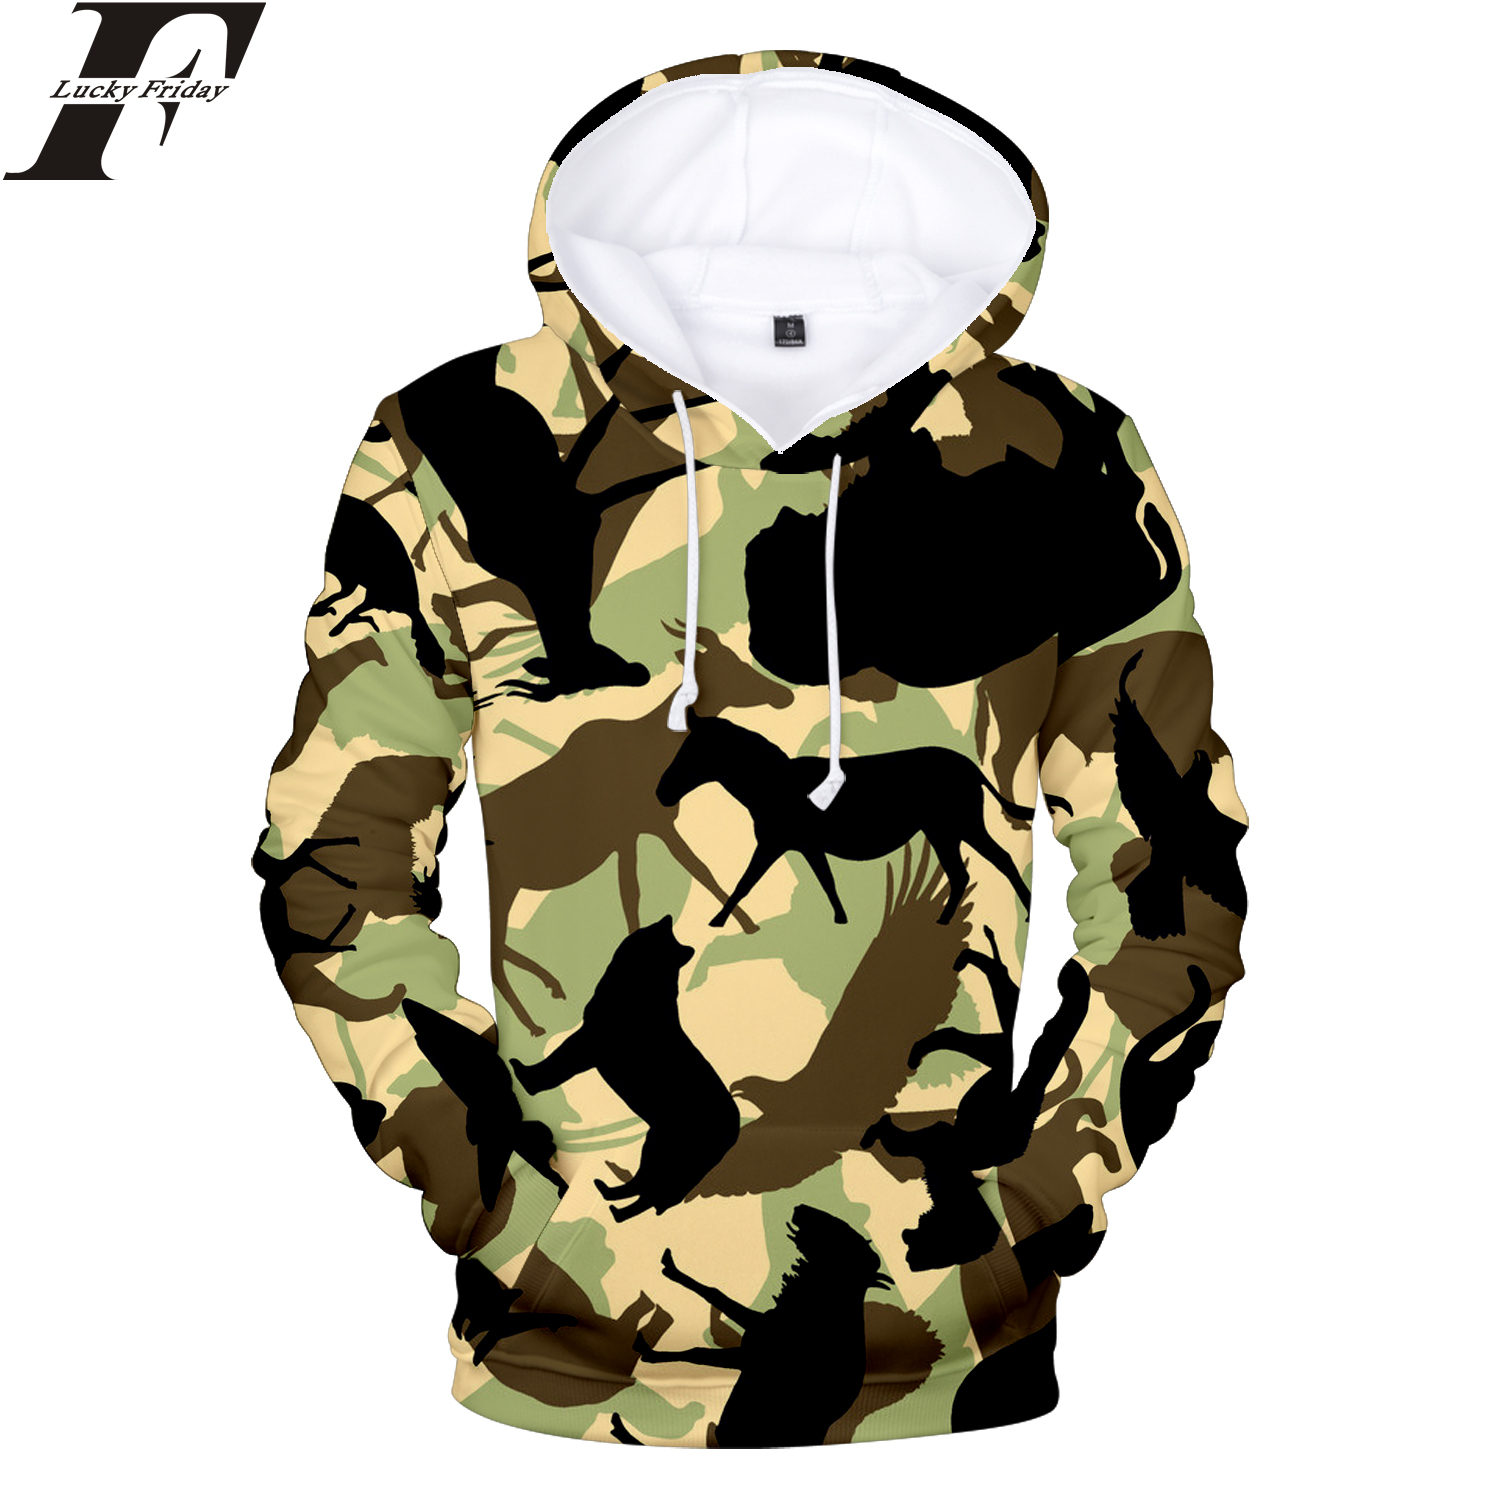 LUCKYFRIDAYF Camouflage Style 3D Hoodies Sweatshirt Women/Men Hoodies Fashion Hoodies Patchwork Style Casual Clothes Plus Size